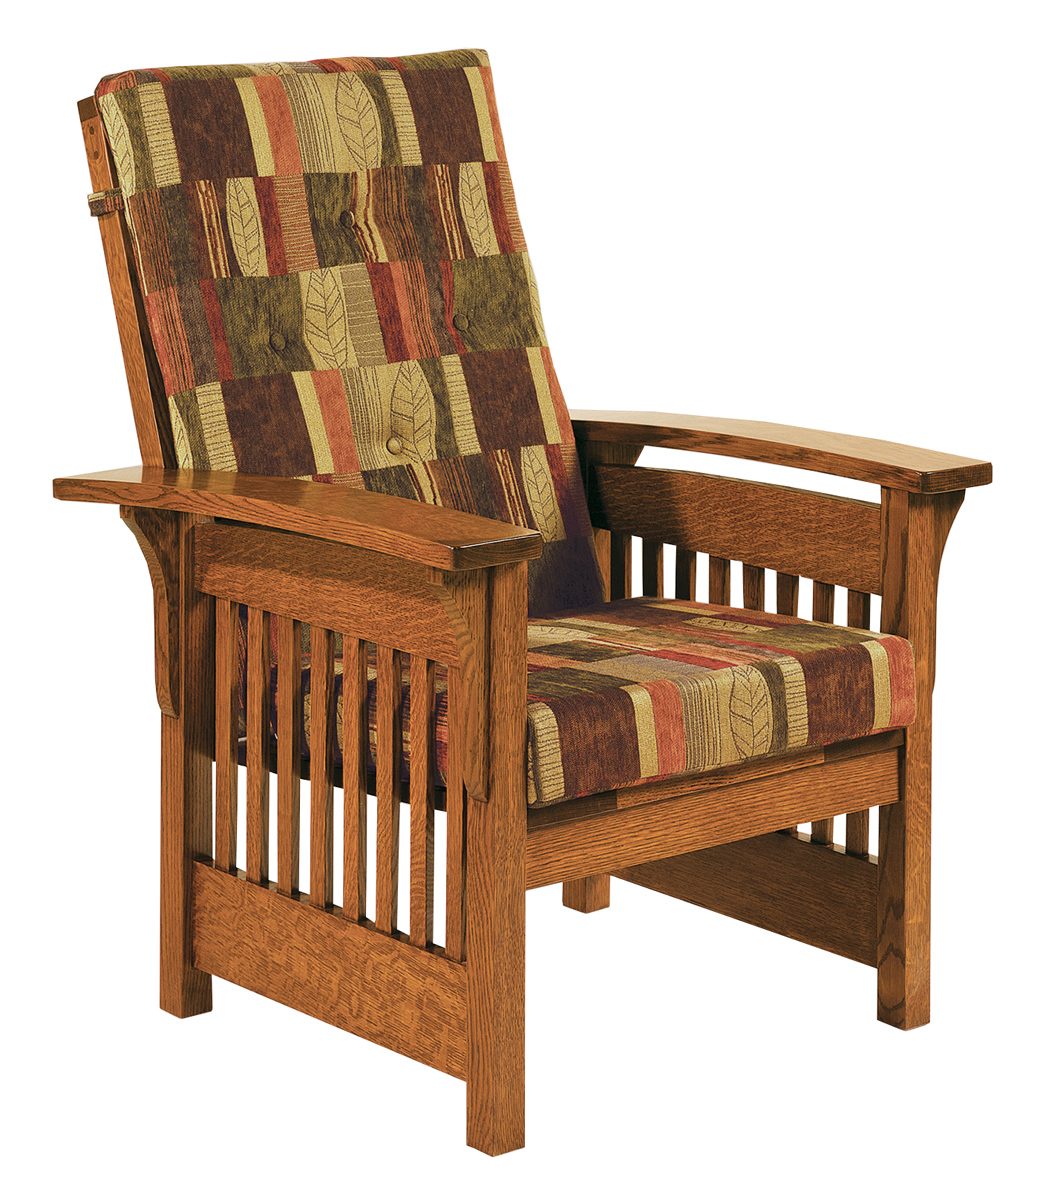 Mission style living room furniture amish outlet store for Mission style living room furniture